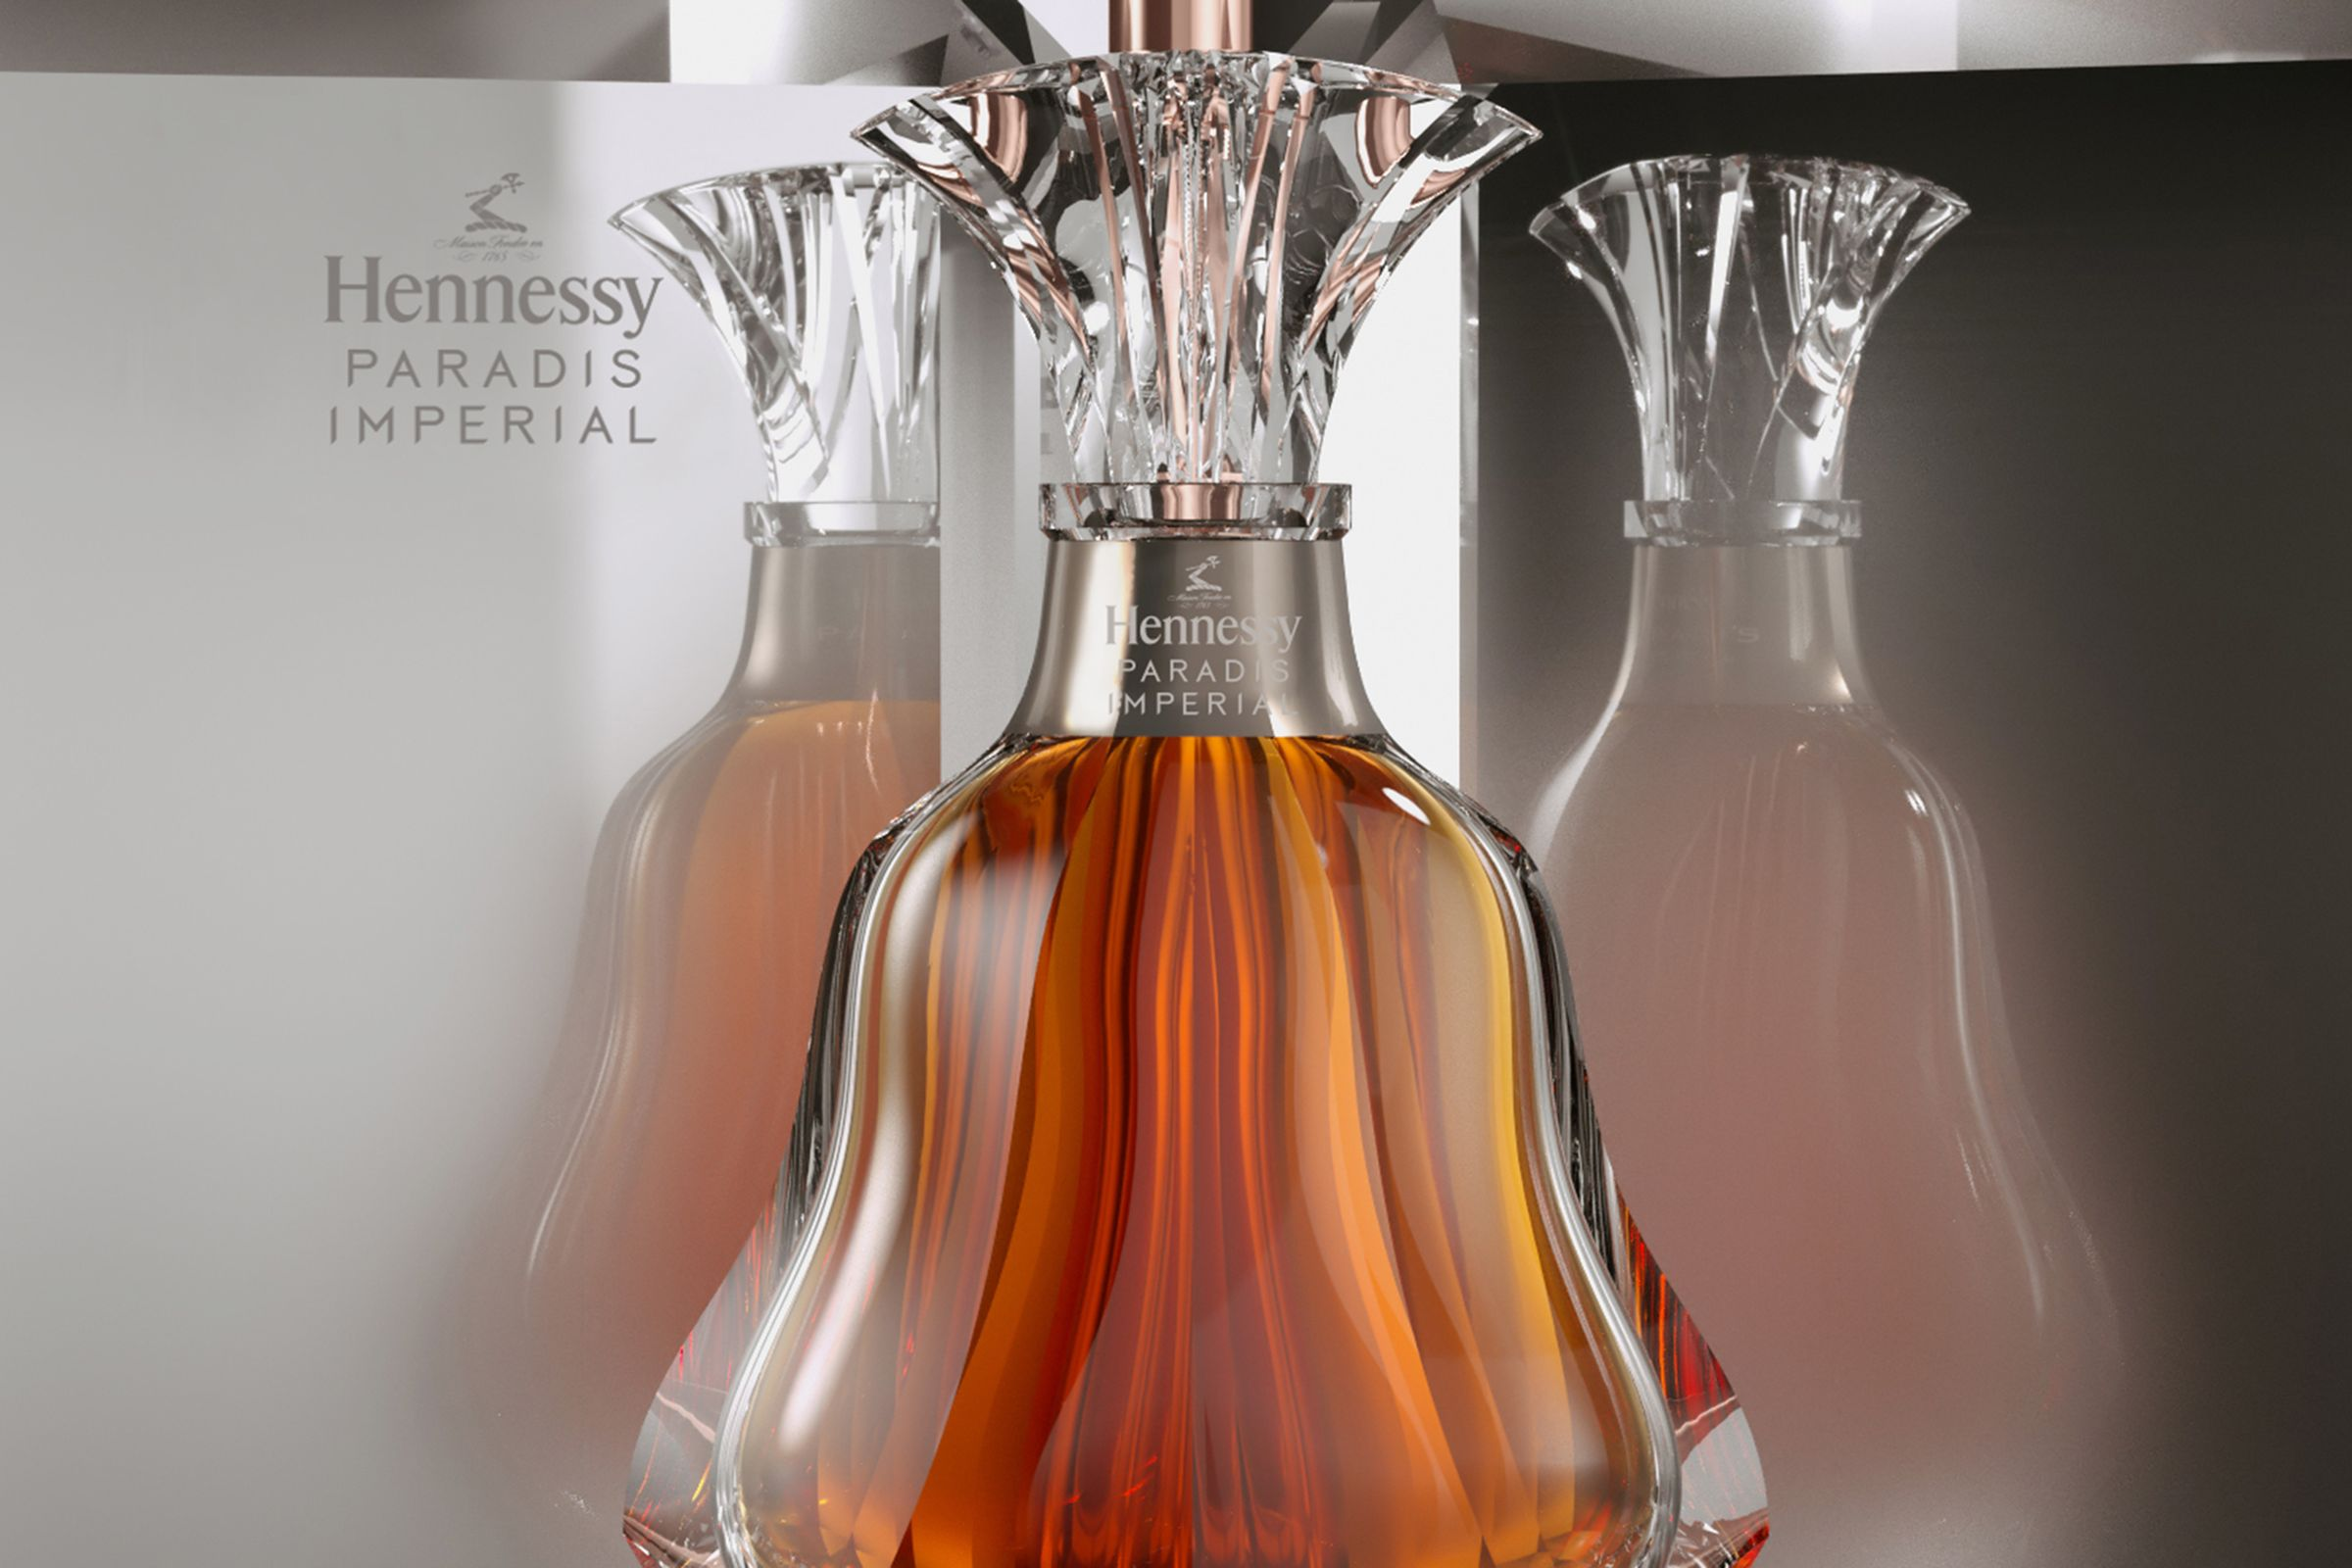 Hennessy Paradis Impérial logo design applied to bottle and box